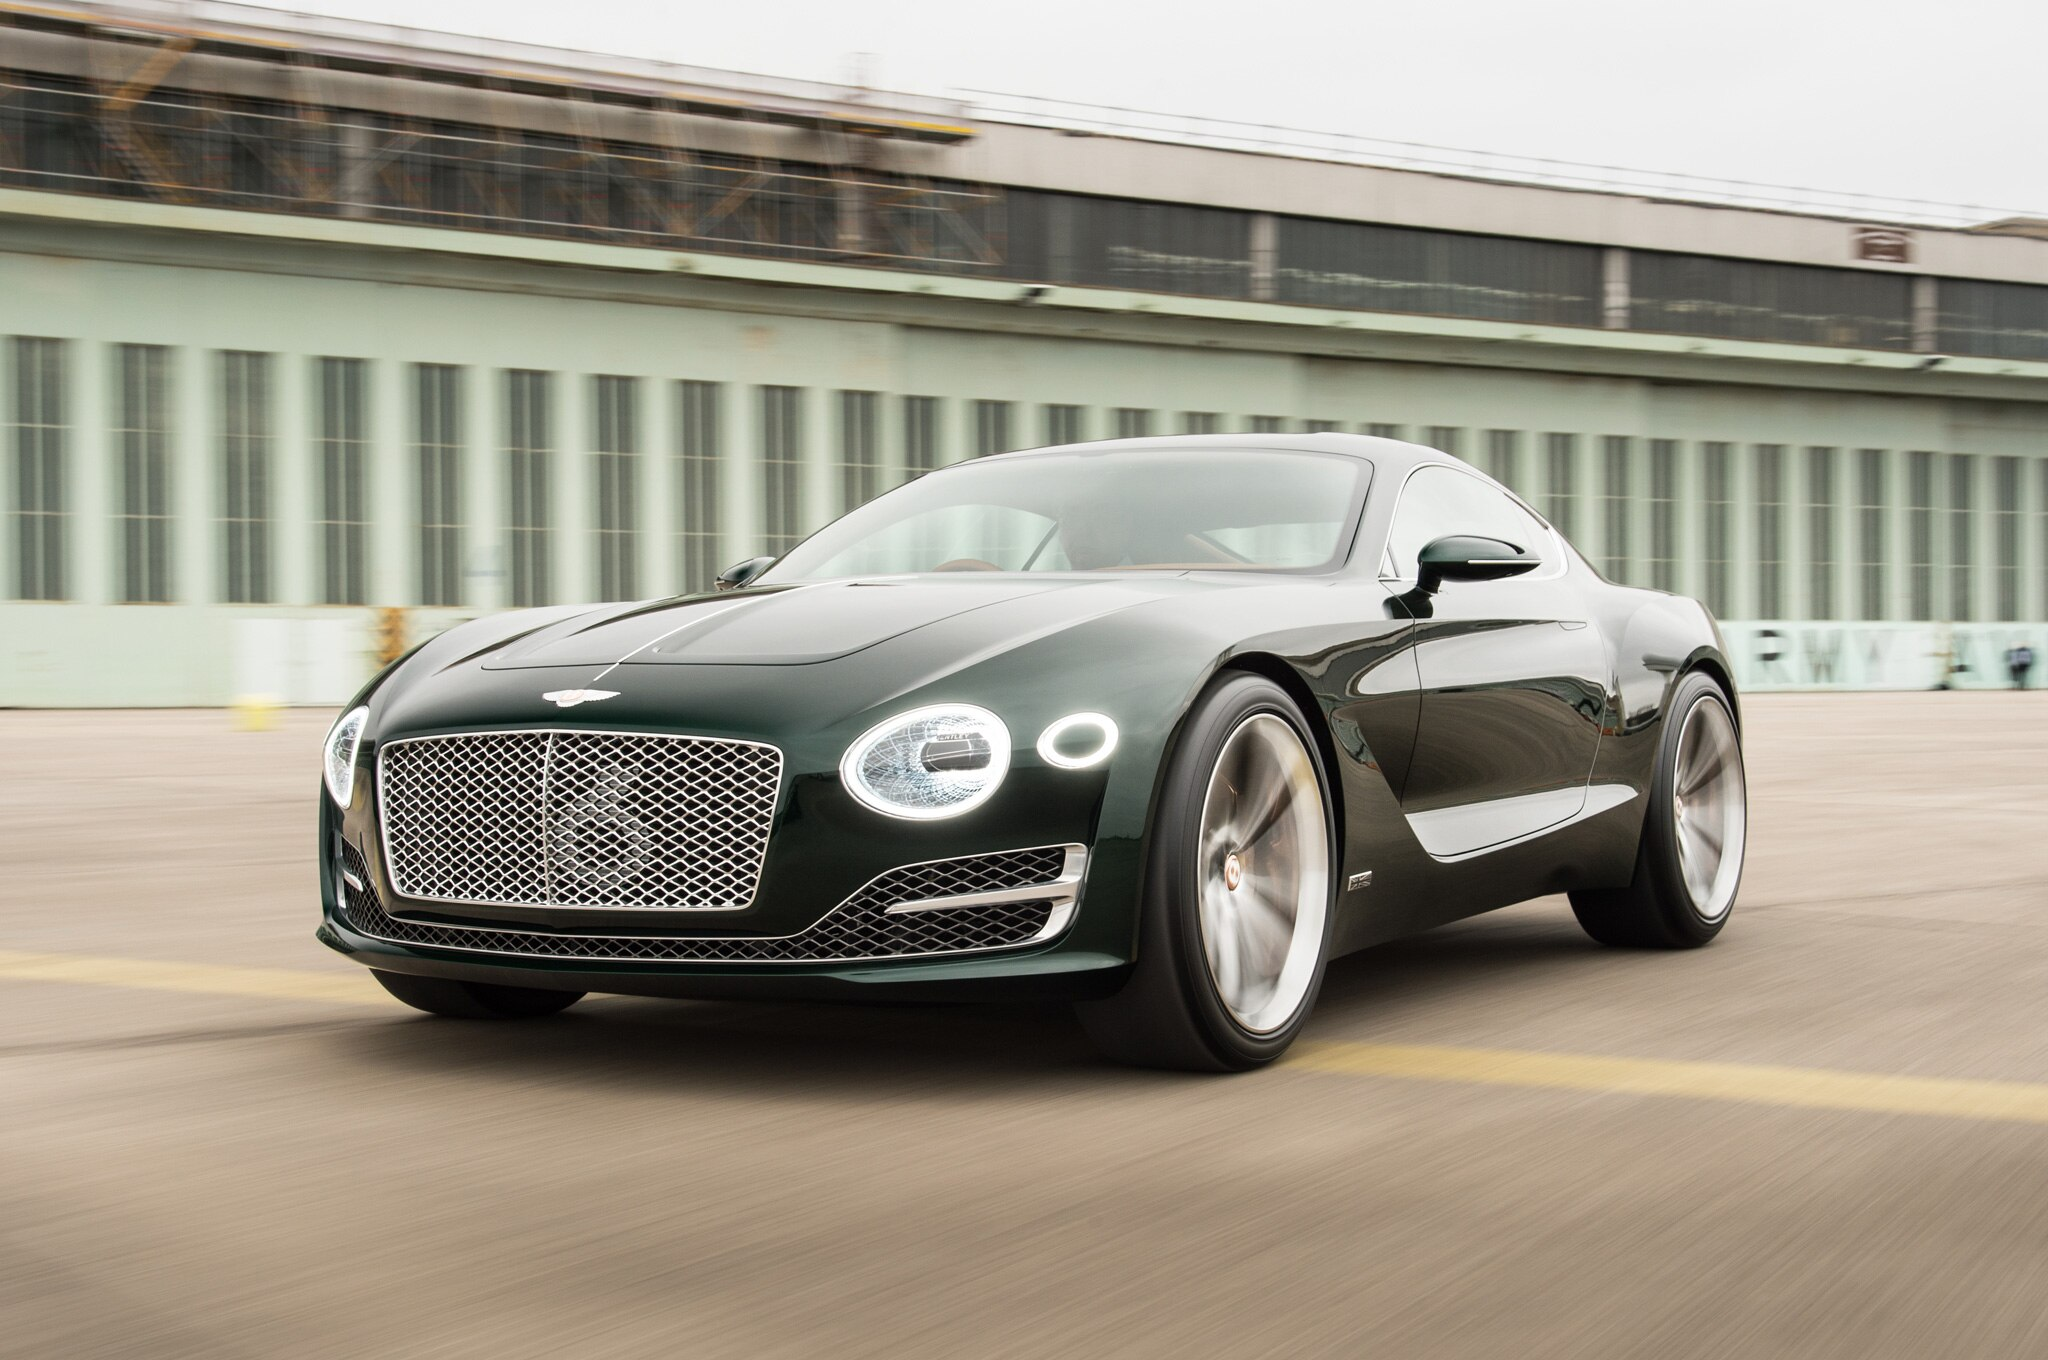 Bentley EXP 10 Speed 6 Concept Front Three Quarter In Motion 07